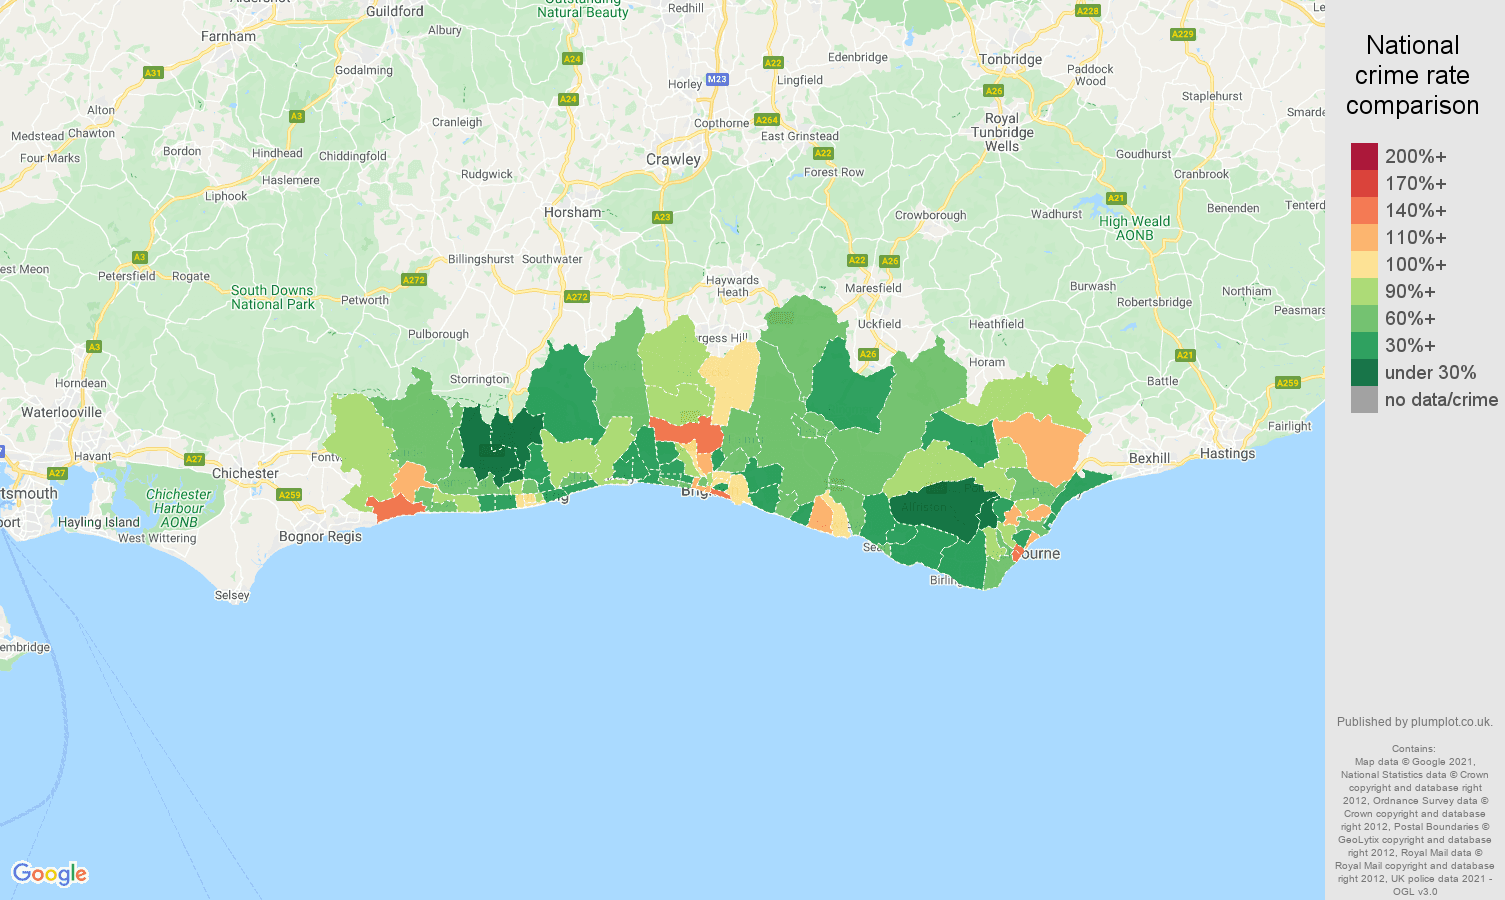 Brighton burglary crime rate comparison map